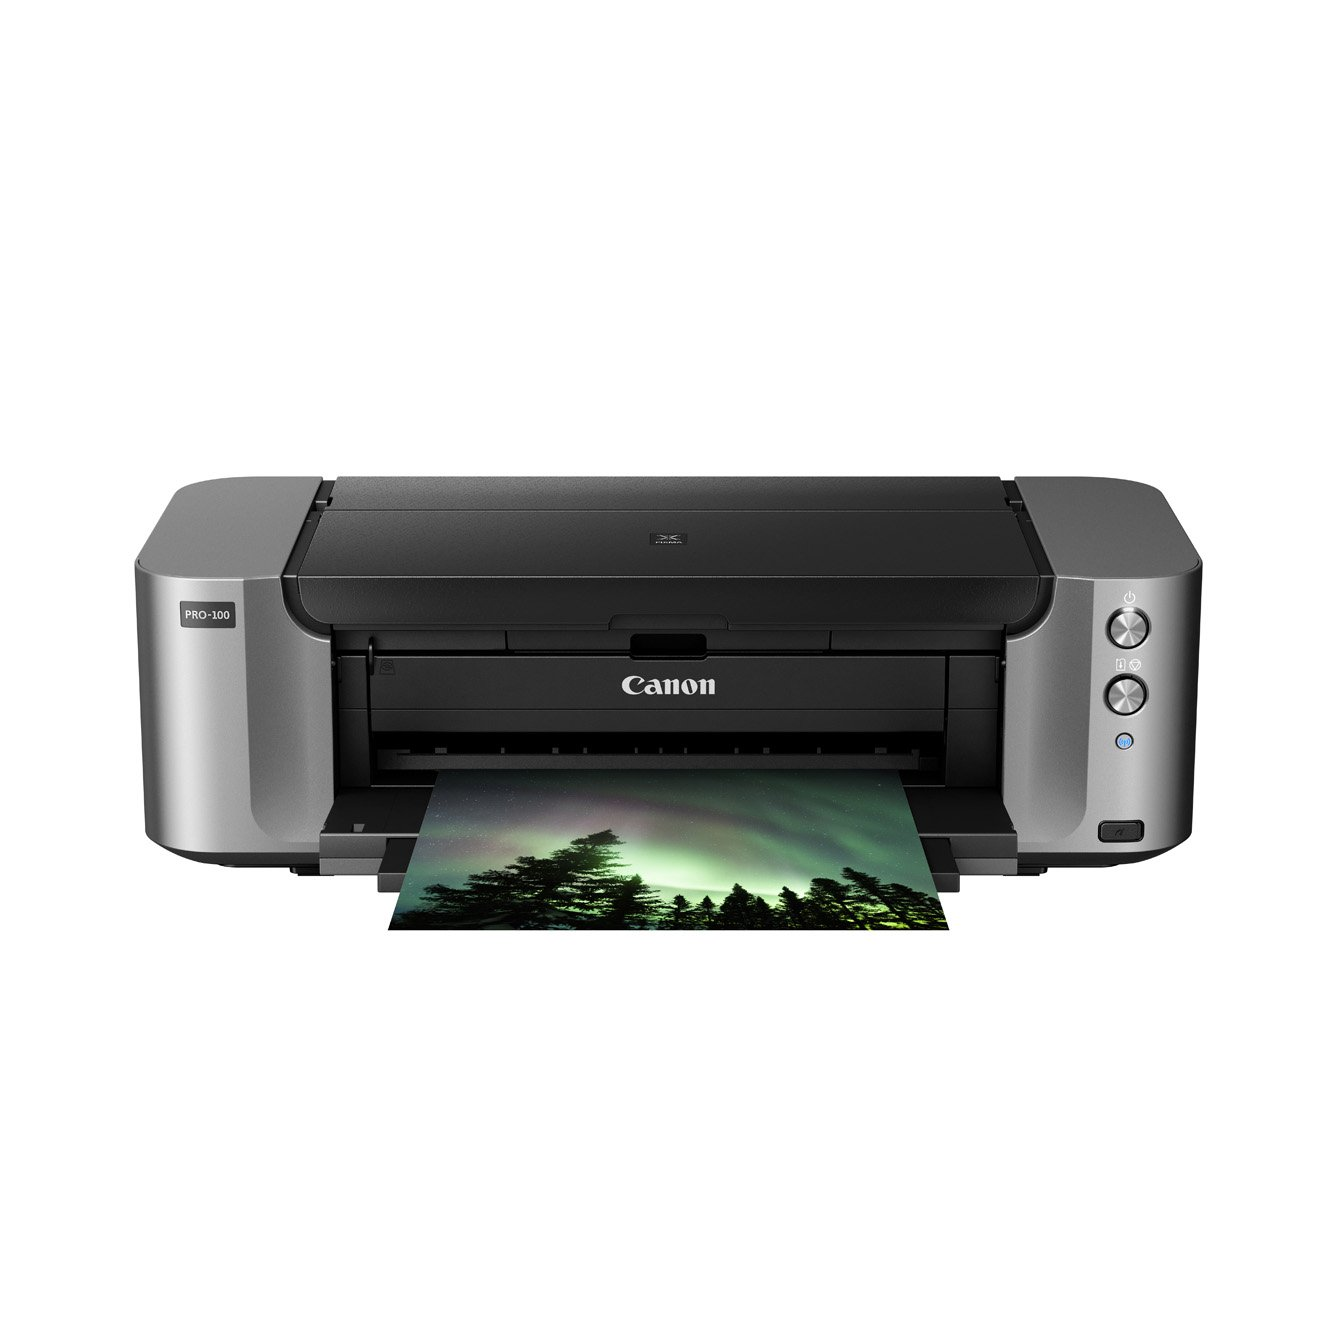 Save $200 on the Canon PIXMA PRO-100 via Mail-In Rebate $189.00